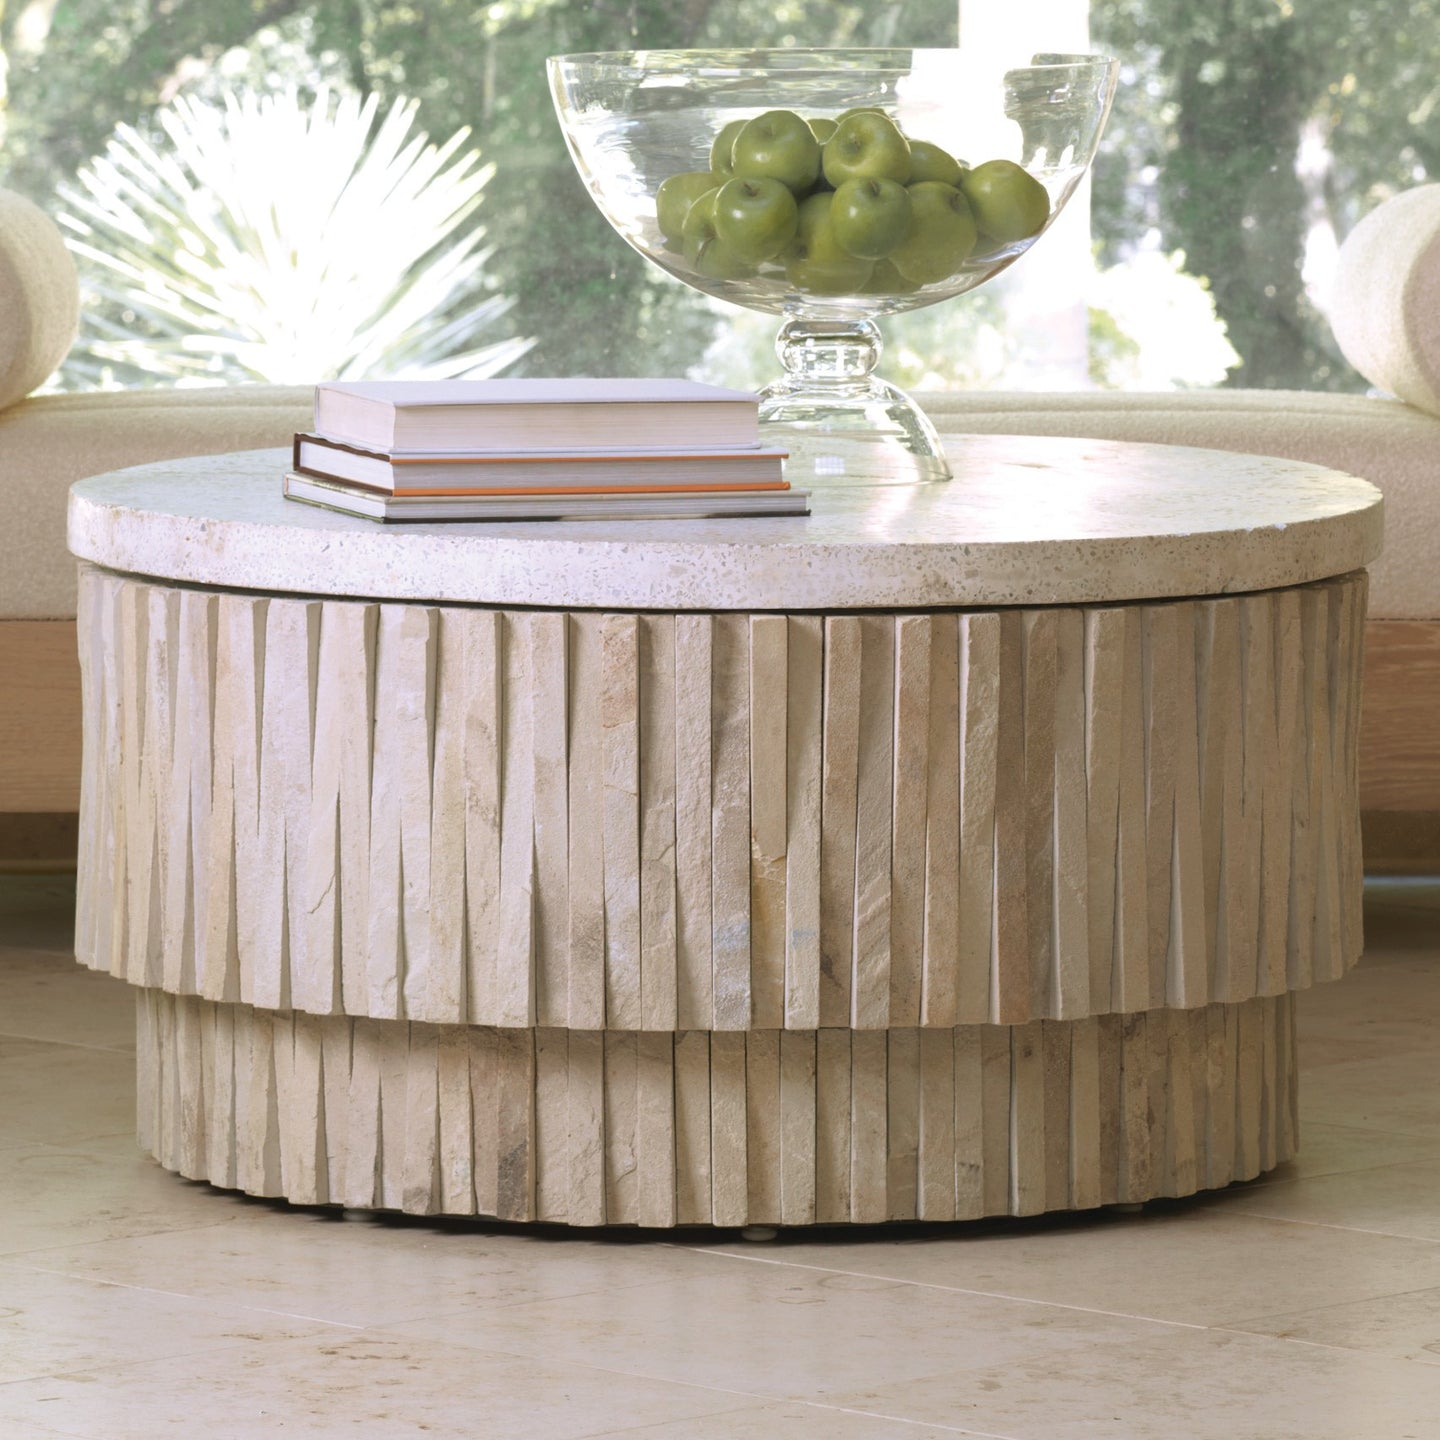 Exceptionnel Global Views Round Teeter Totter Stone Cocktail Coffee Table Natural Marble  Organic Modern